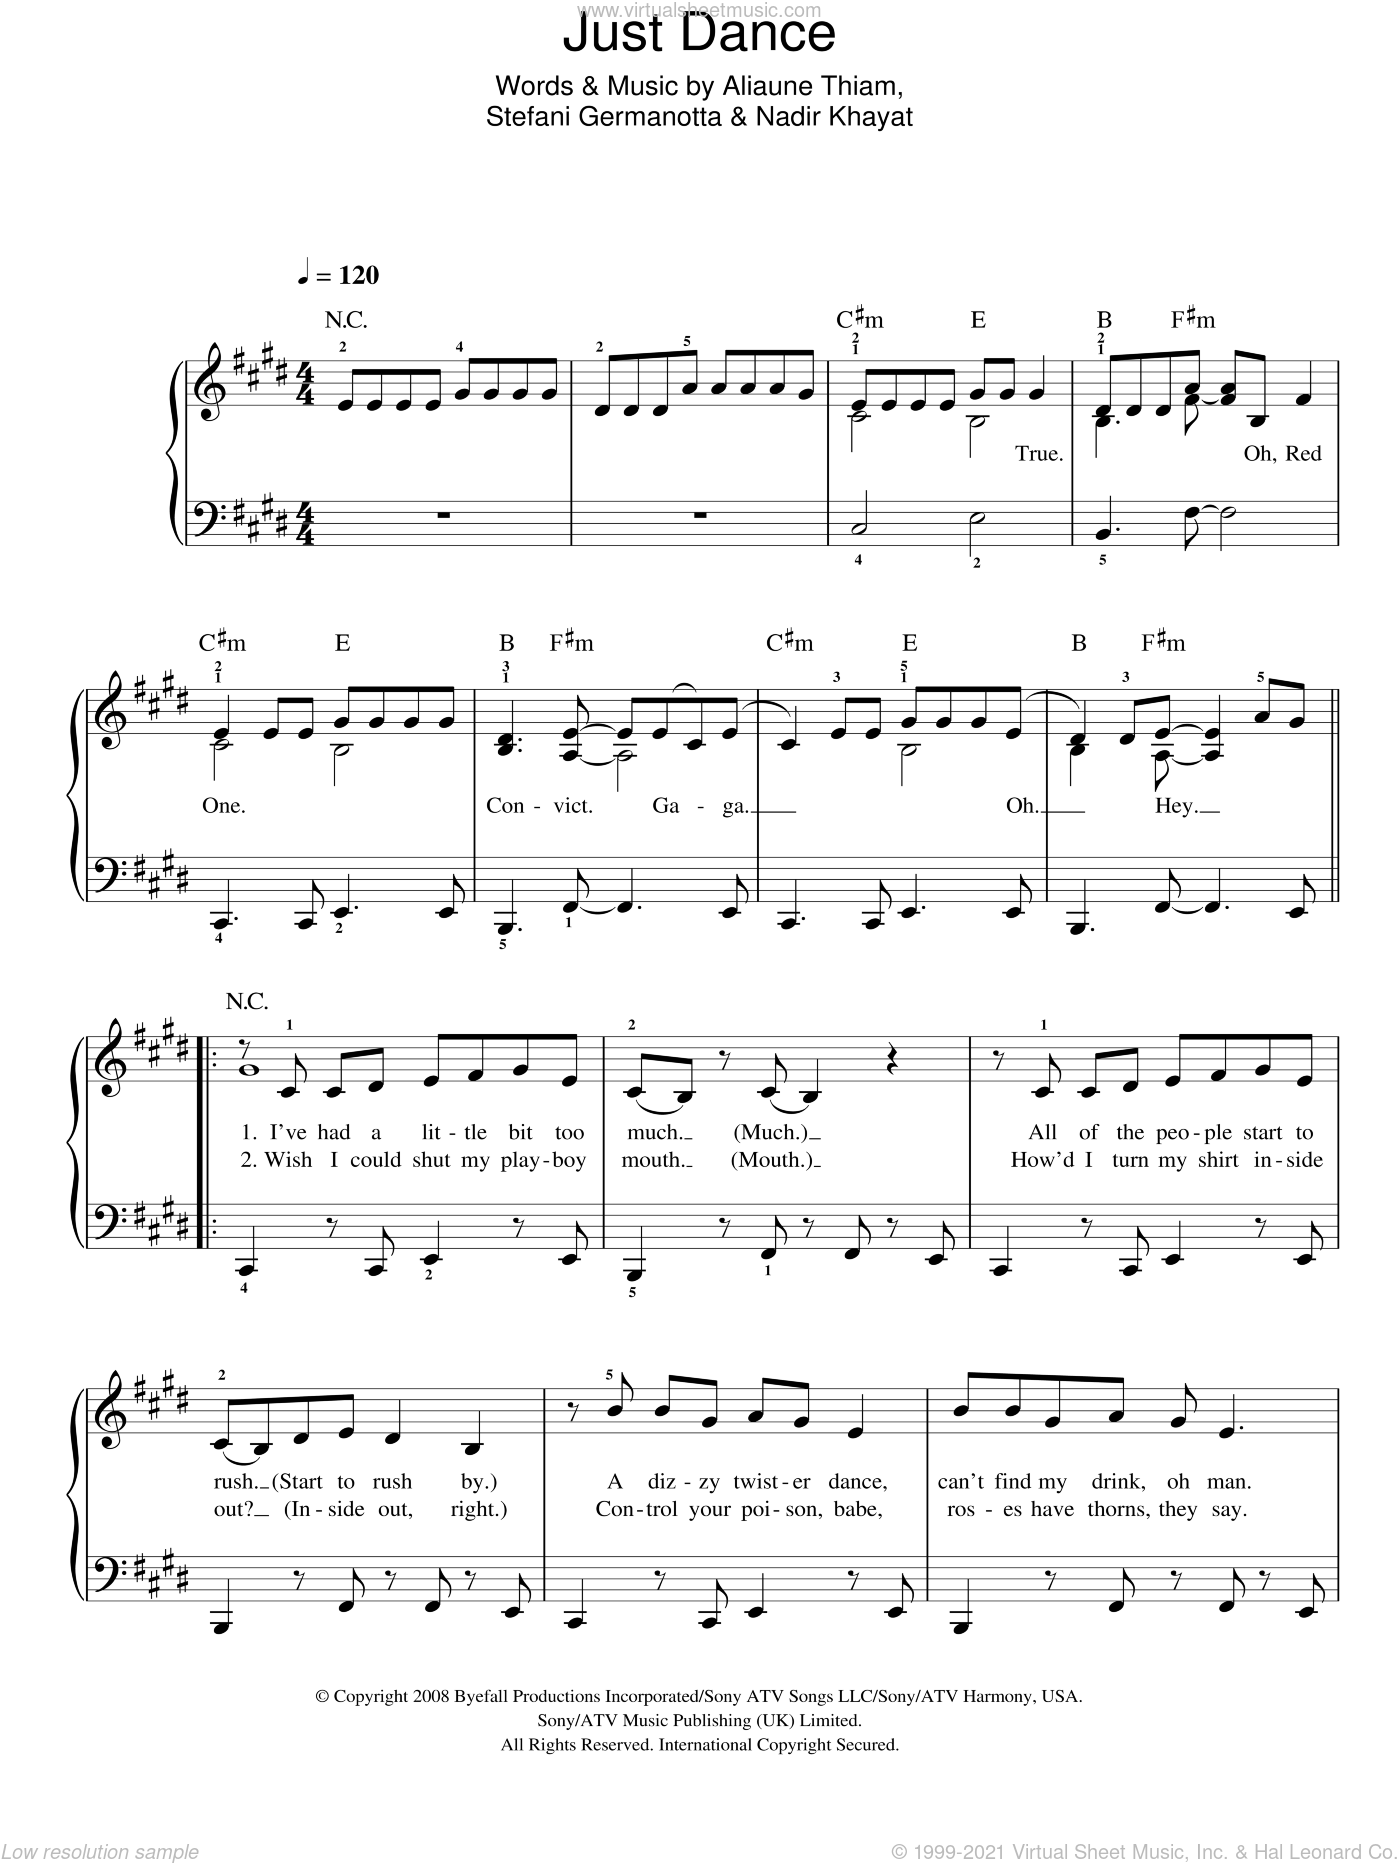 Just Dance sheet music for piano solo by Lady Gaga